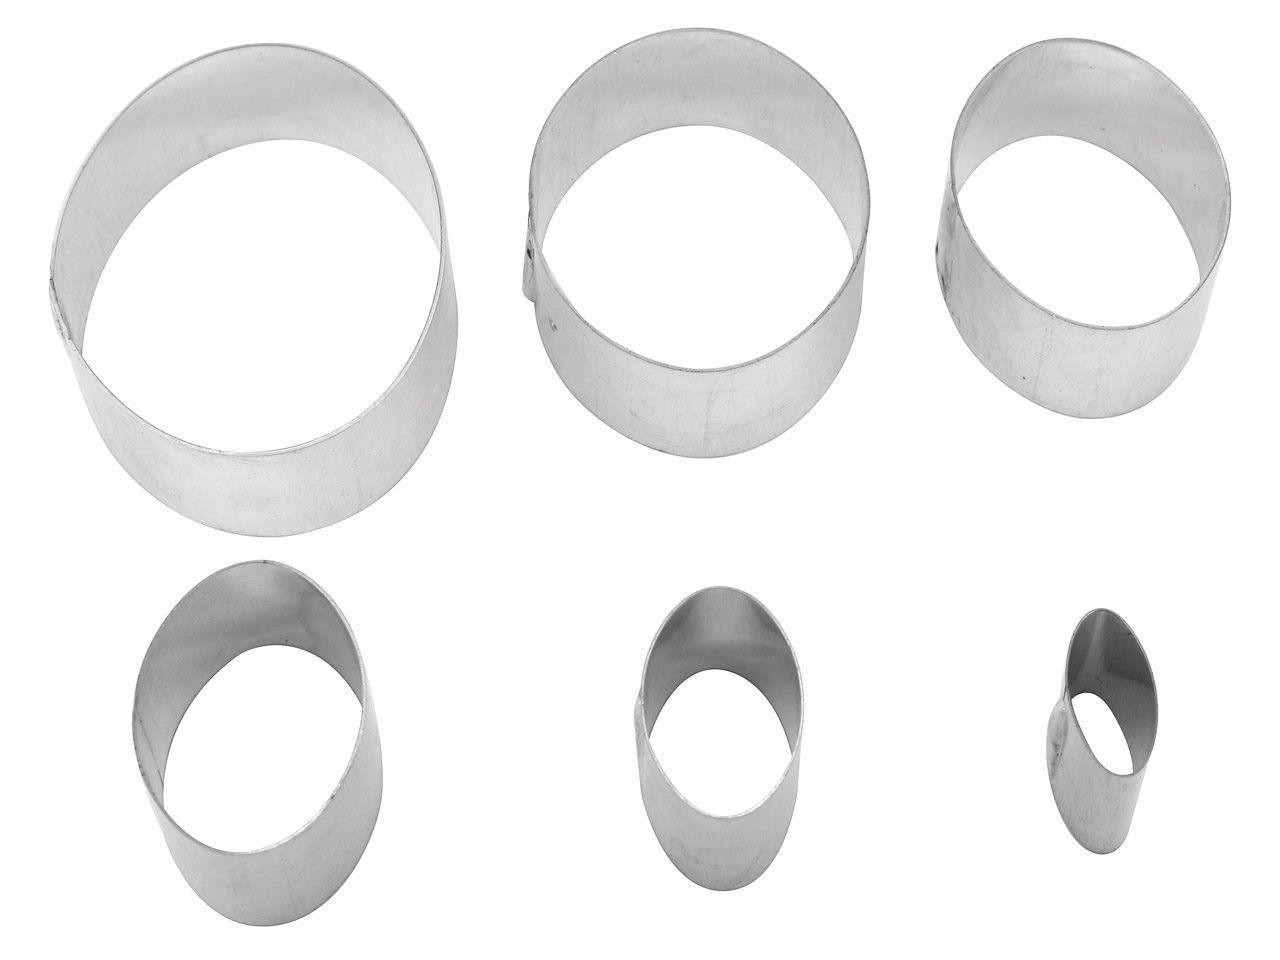 Cutter Oval Pack of 6